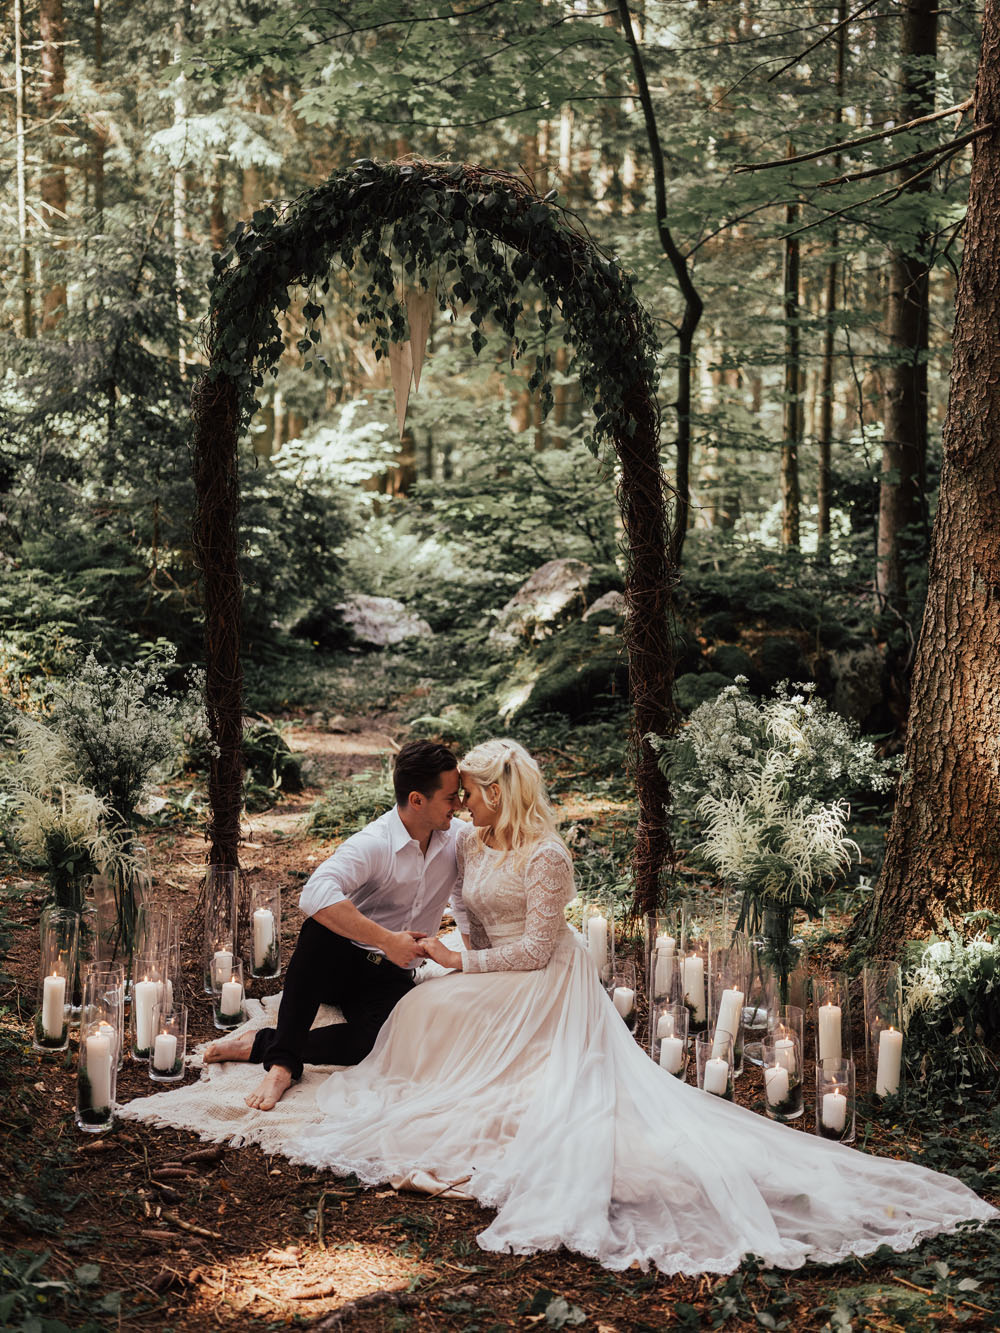 Elopement in forest full of gorgeous details and beautiful decoration